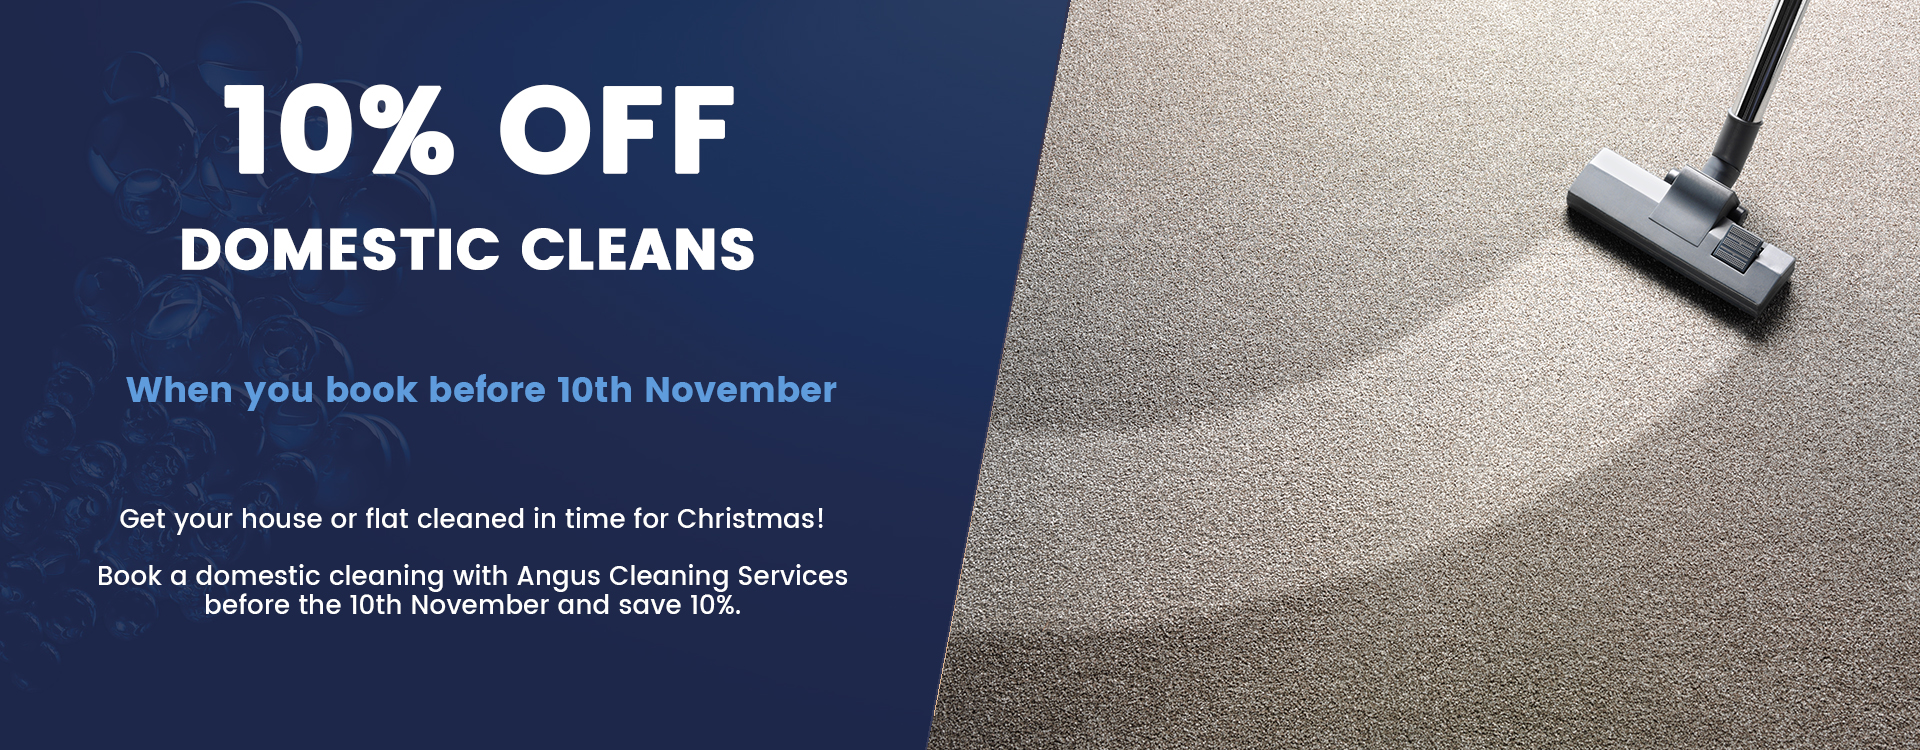 domestic cleaning deal in arbroath